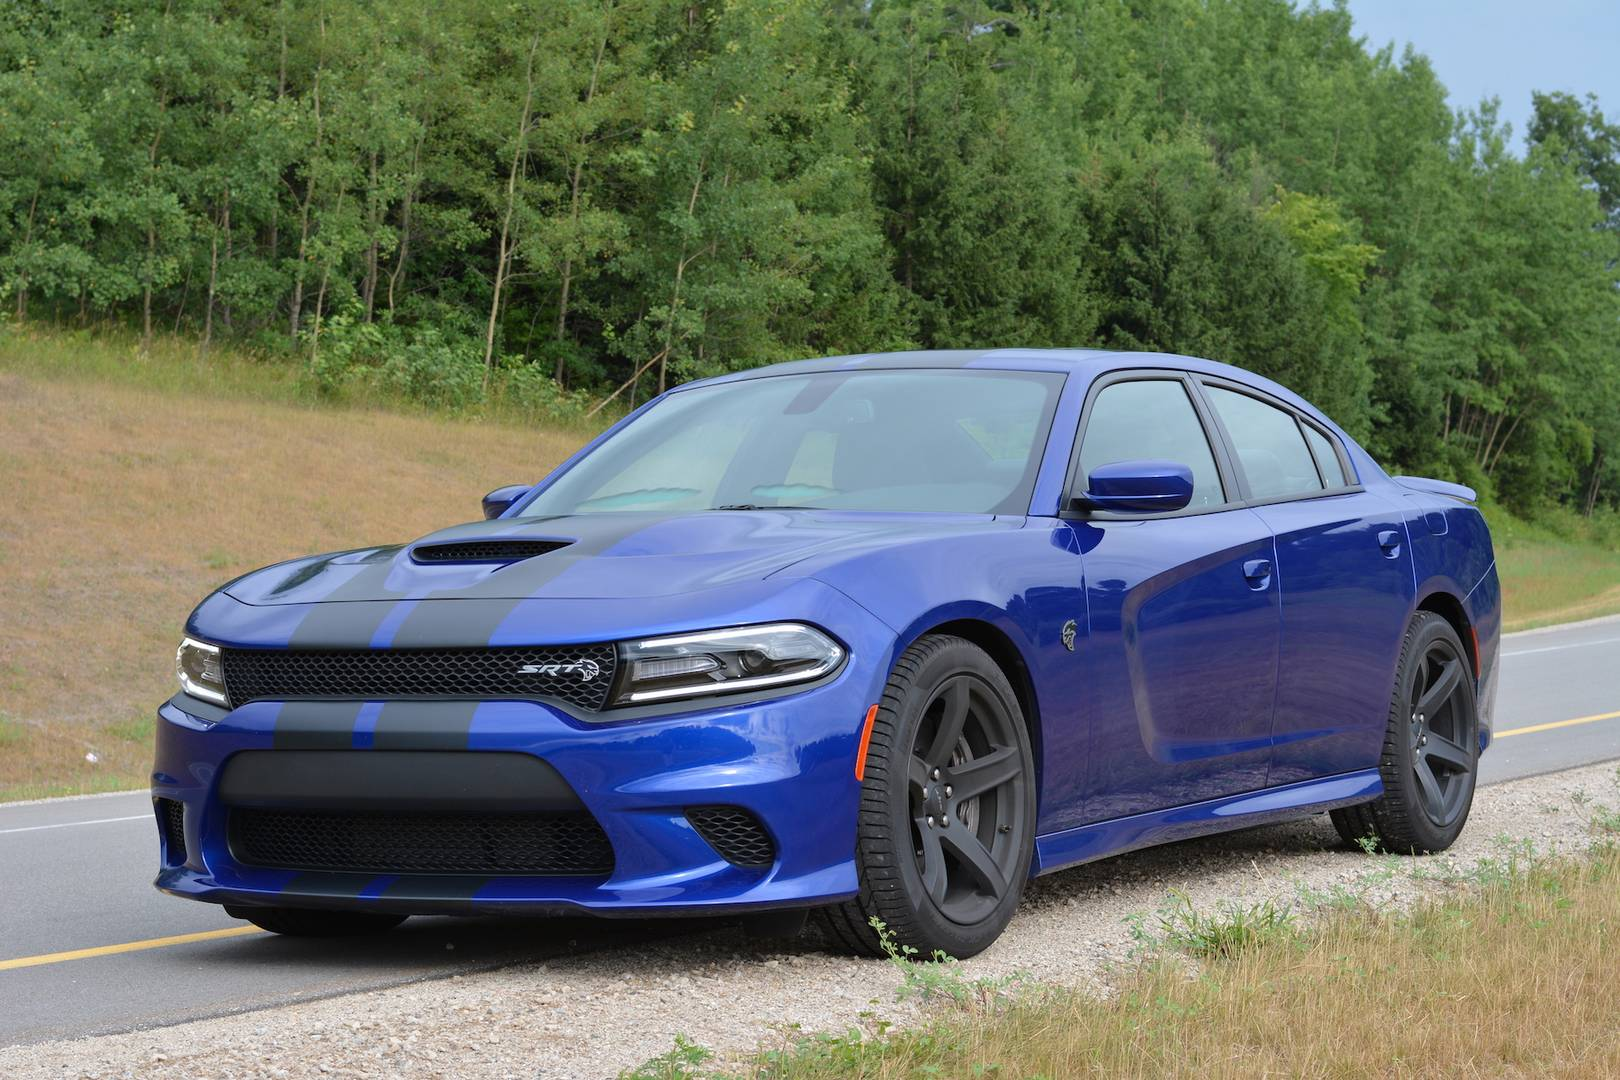 2019 dodge charger srt hellcat review gtspirit. Black Bedroom Furniture Sets. Home Design Ideas